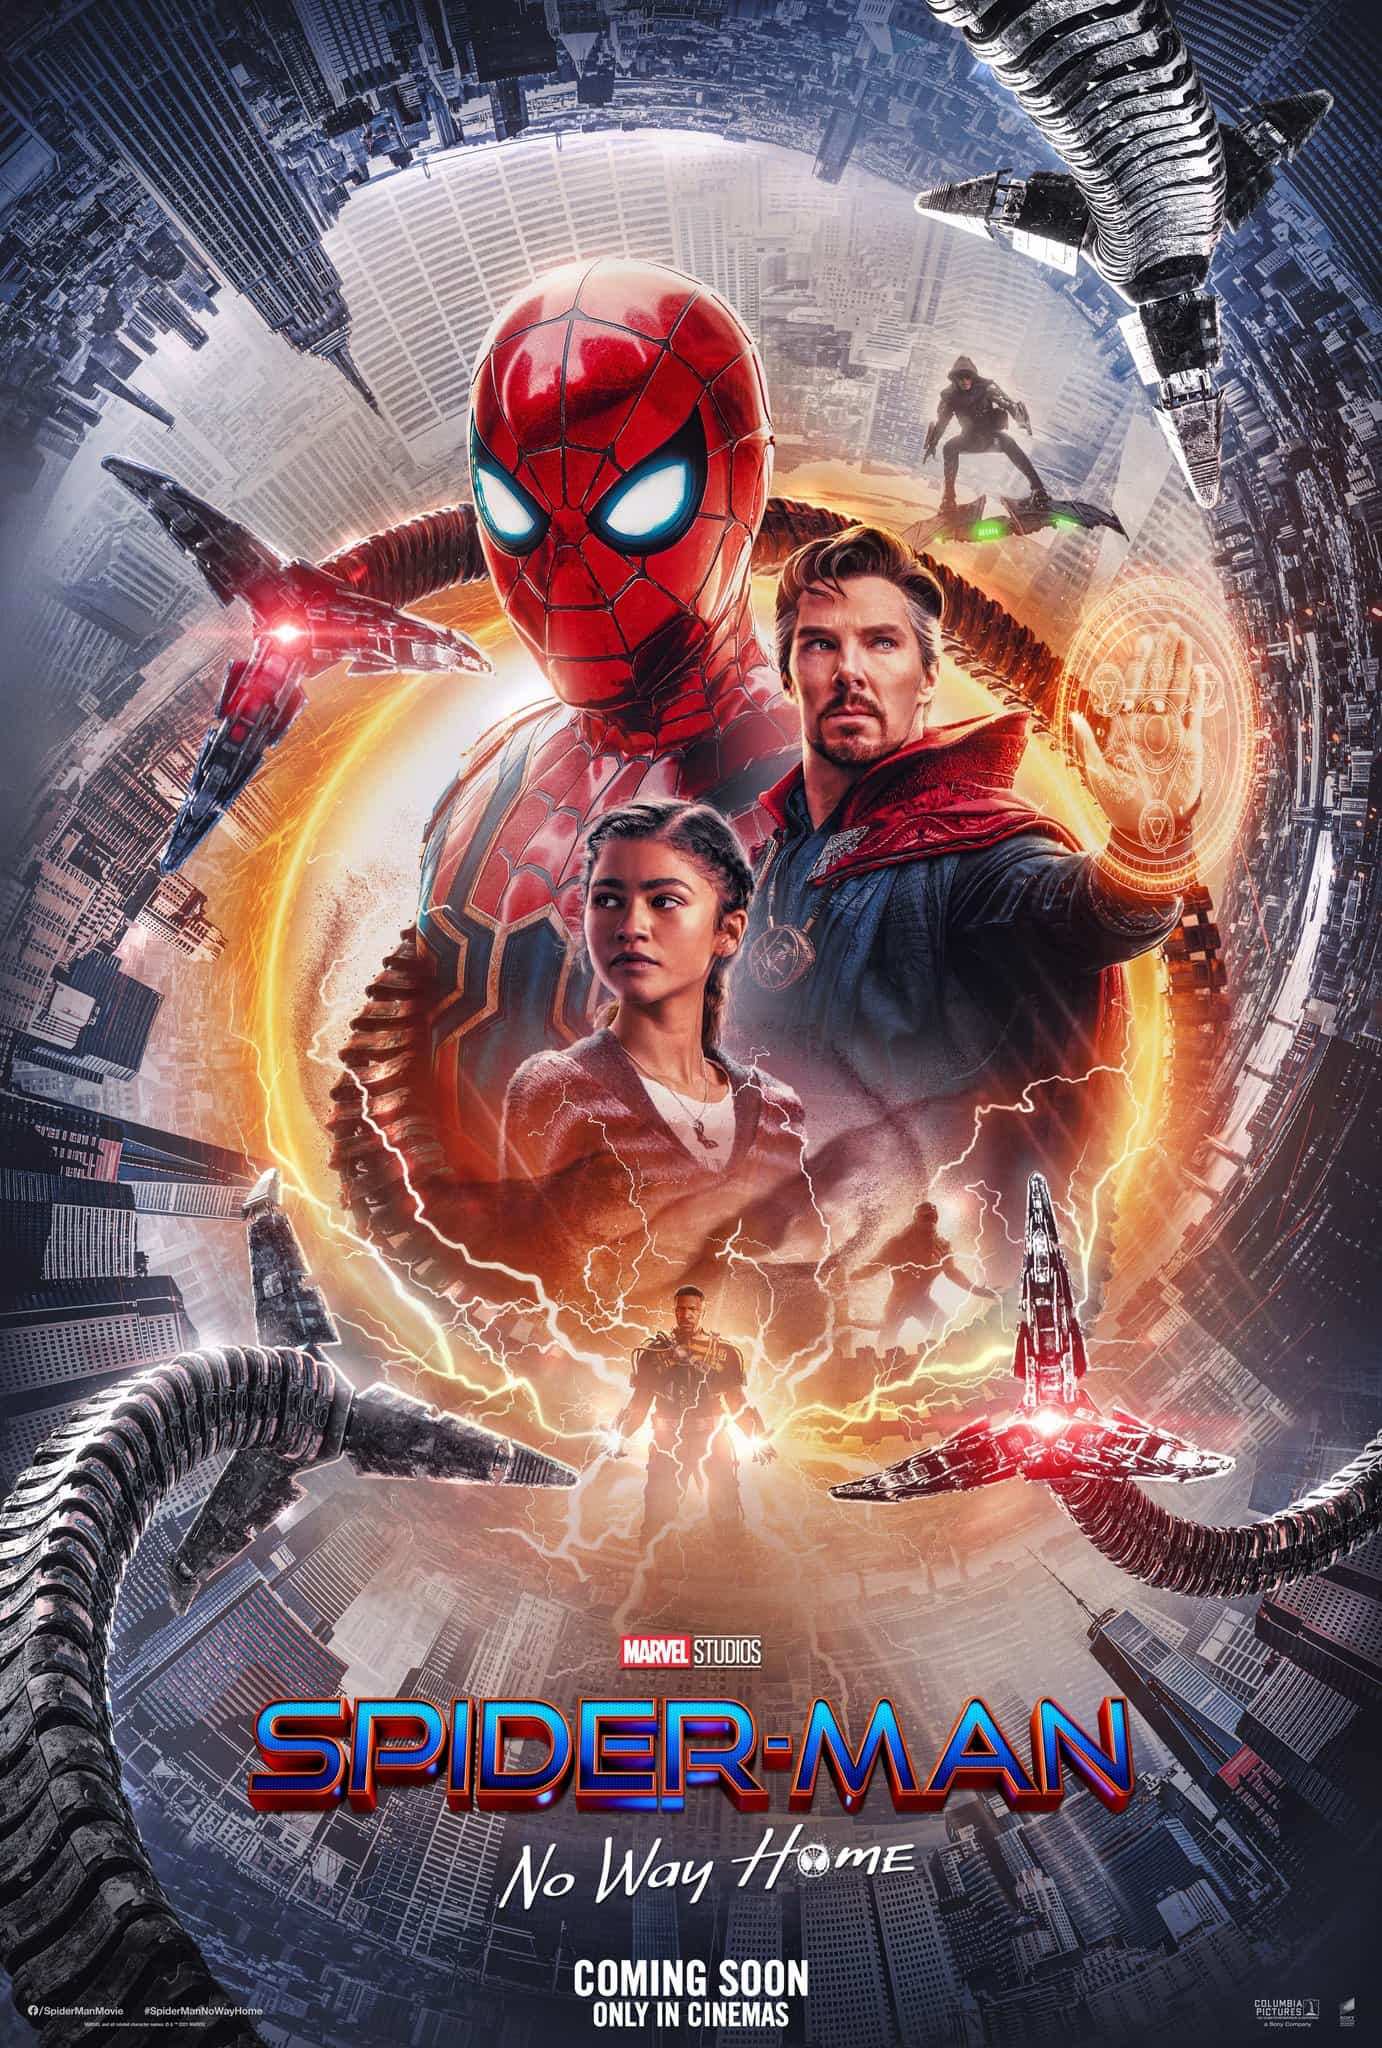 The third film in the Marvel Cinematic Universe Spider-Man series will be called Spider-Man: No Way Home